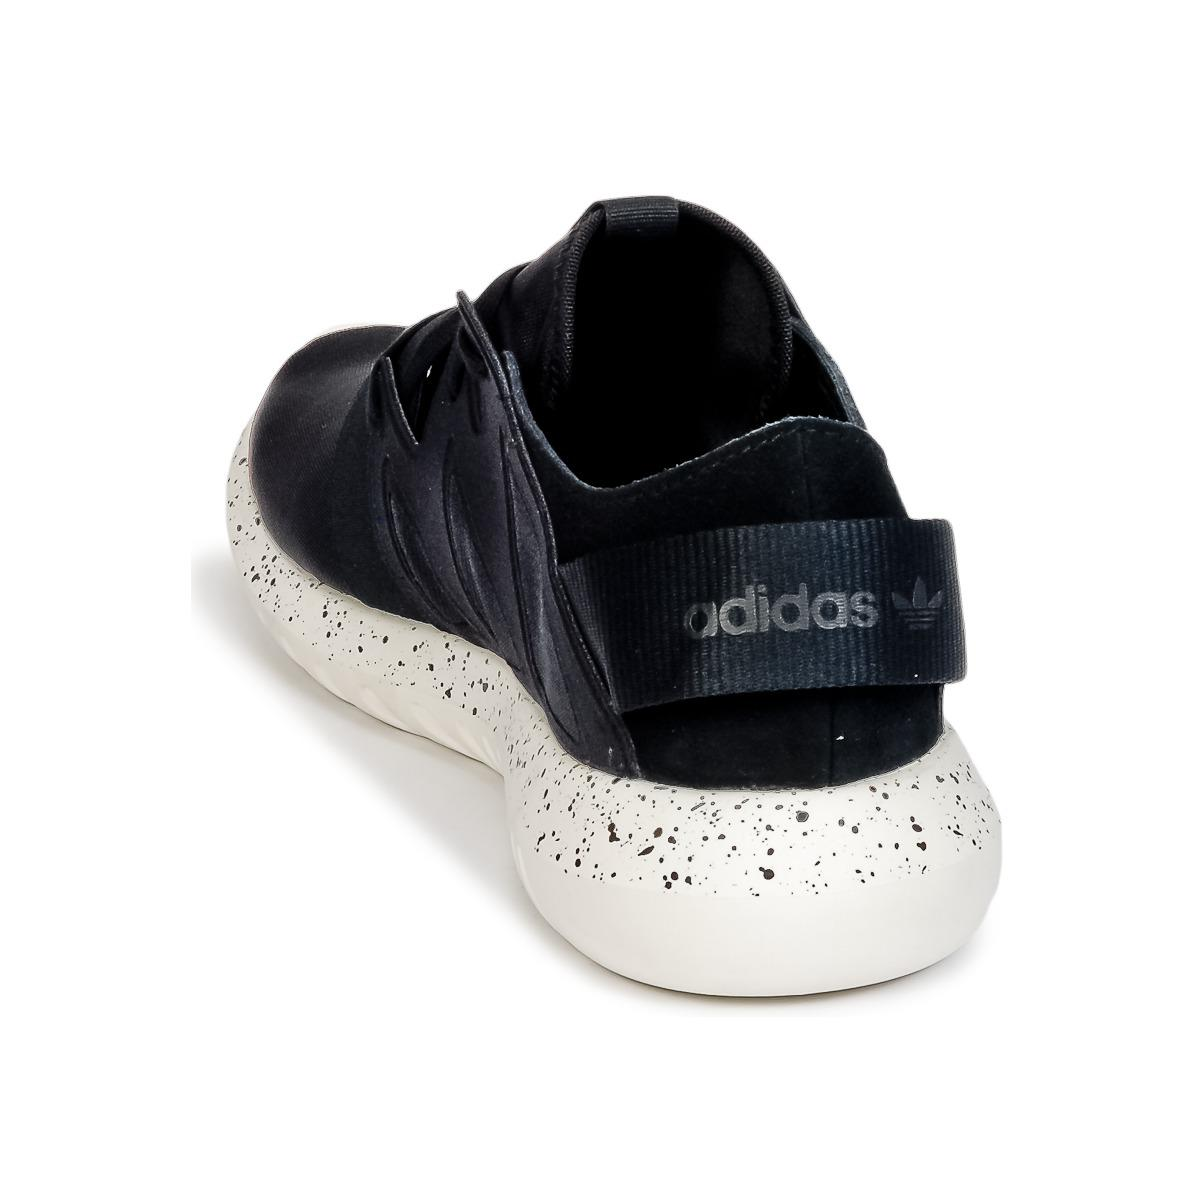 adidas Tubular Viral W Women's Shoes (trainers) In Black